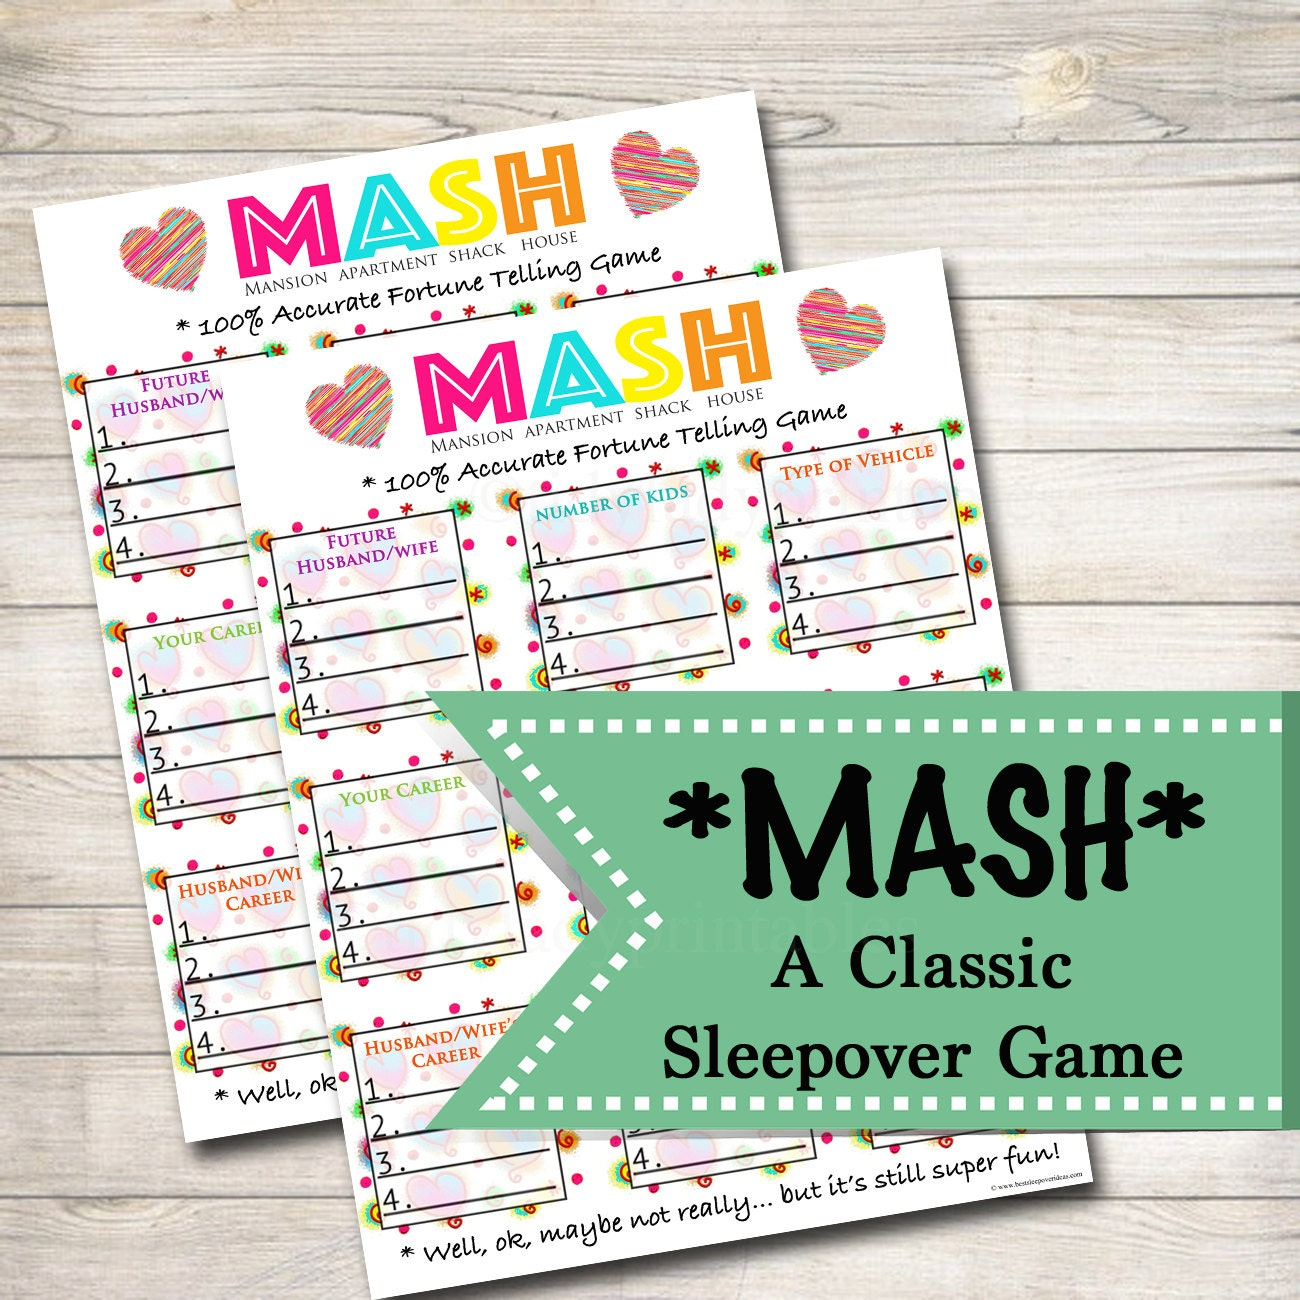 Nail Polish Bottles Fun Sleepover Games And Sleepover: Printable Mash Game Girls Party Game Spa Party Beauty Party